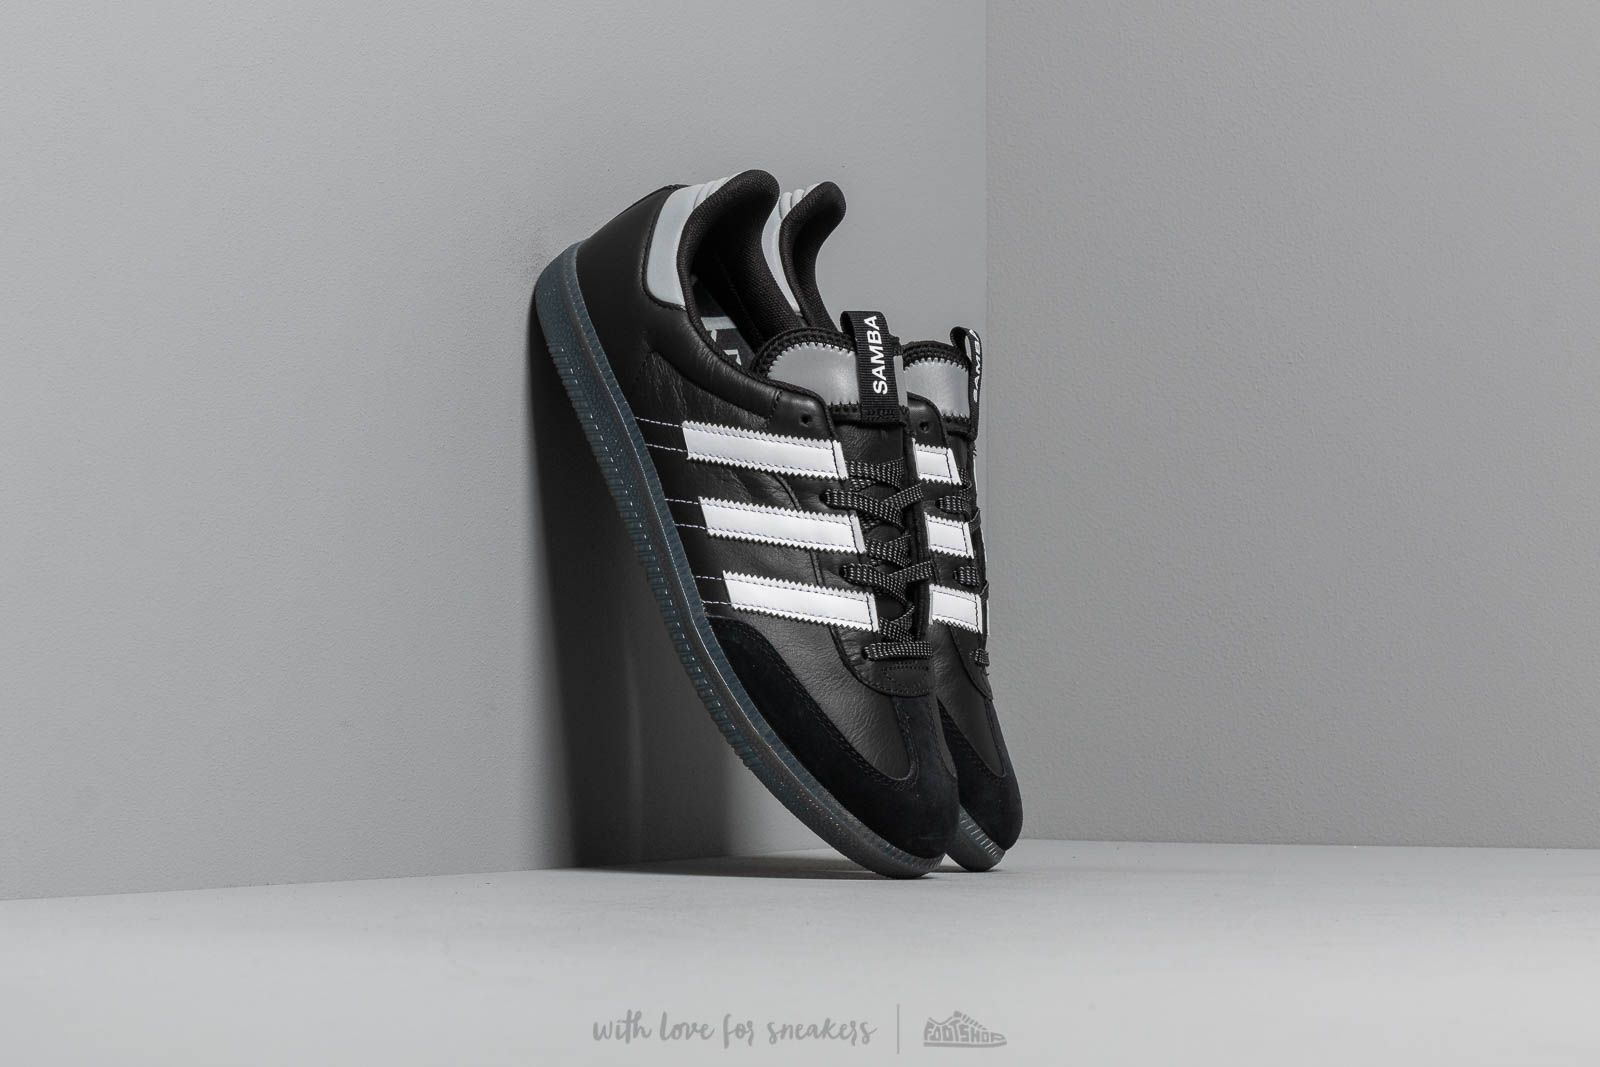 official photos 30c76 6fc74 adidas Samba Og Ms Core Black  Ftw White  Silvmt at a great price 114